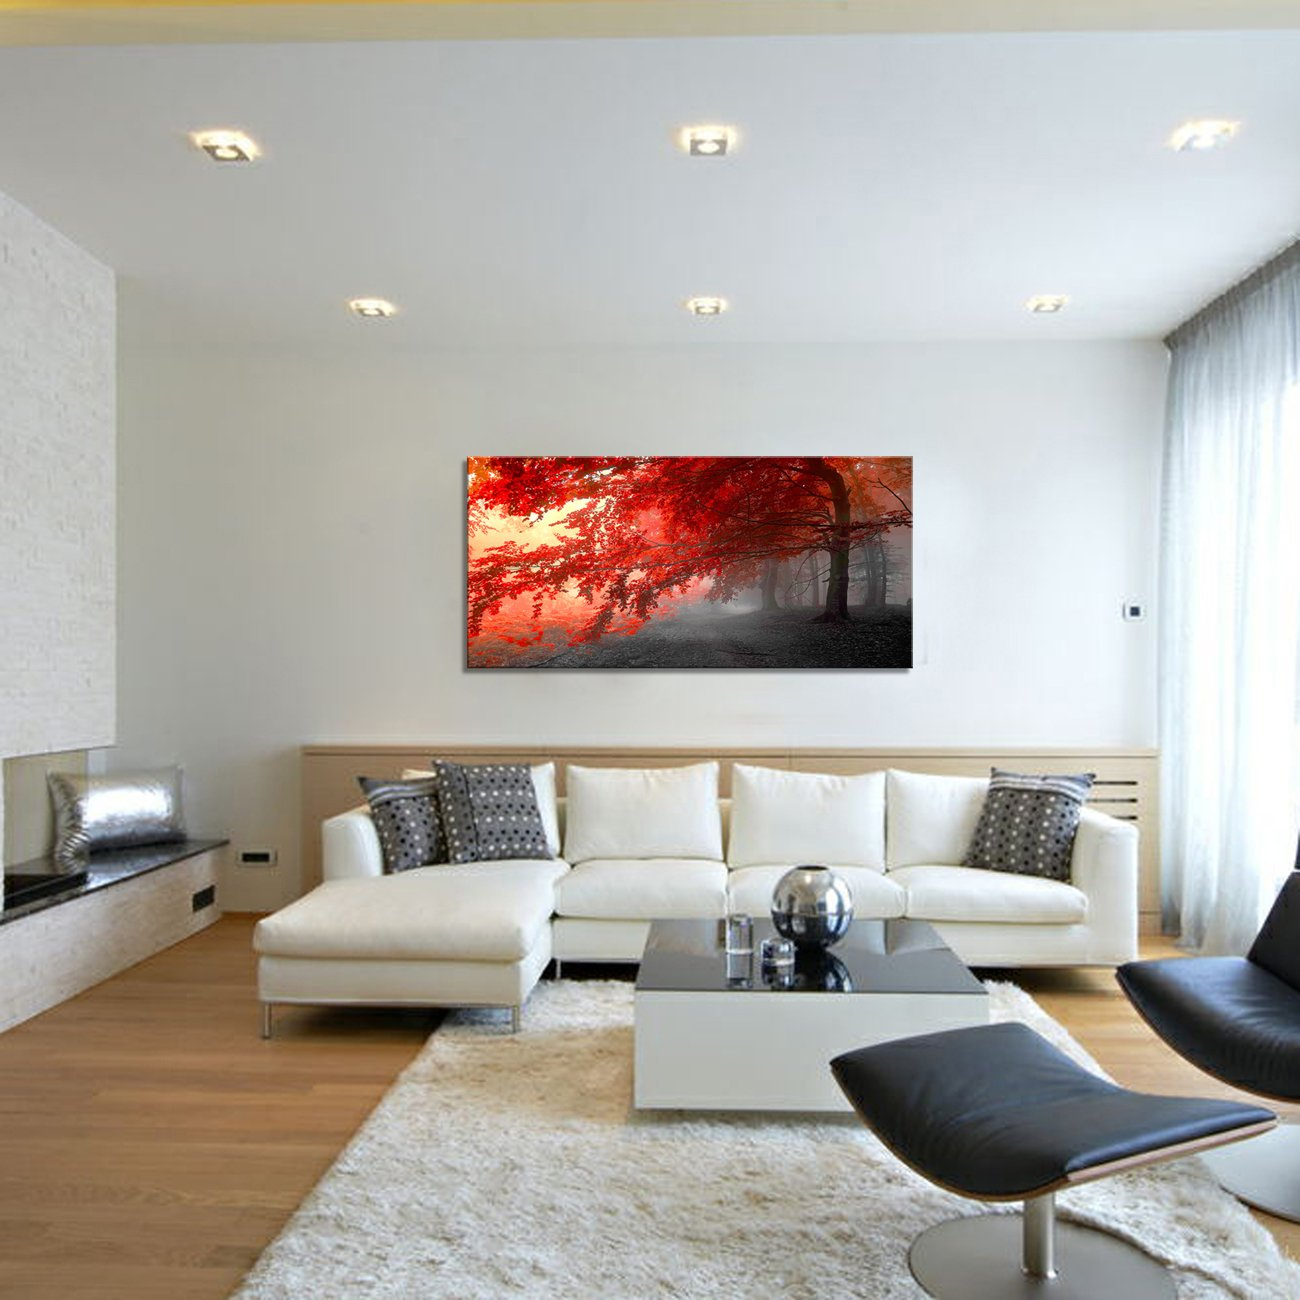 wall art Stretched Framed Ready Hang Flower Landscape Red Tree Flower Modern Painting Canvas Living Room Bedroom Office Wall Art Home Decoration by youkiswall art (Image #6)